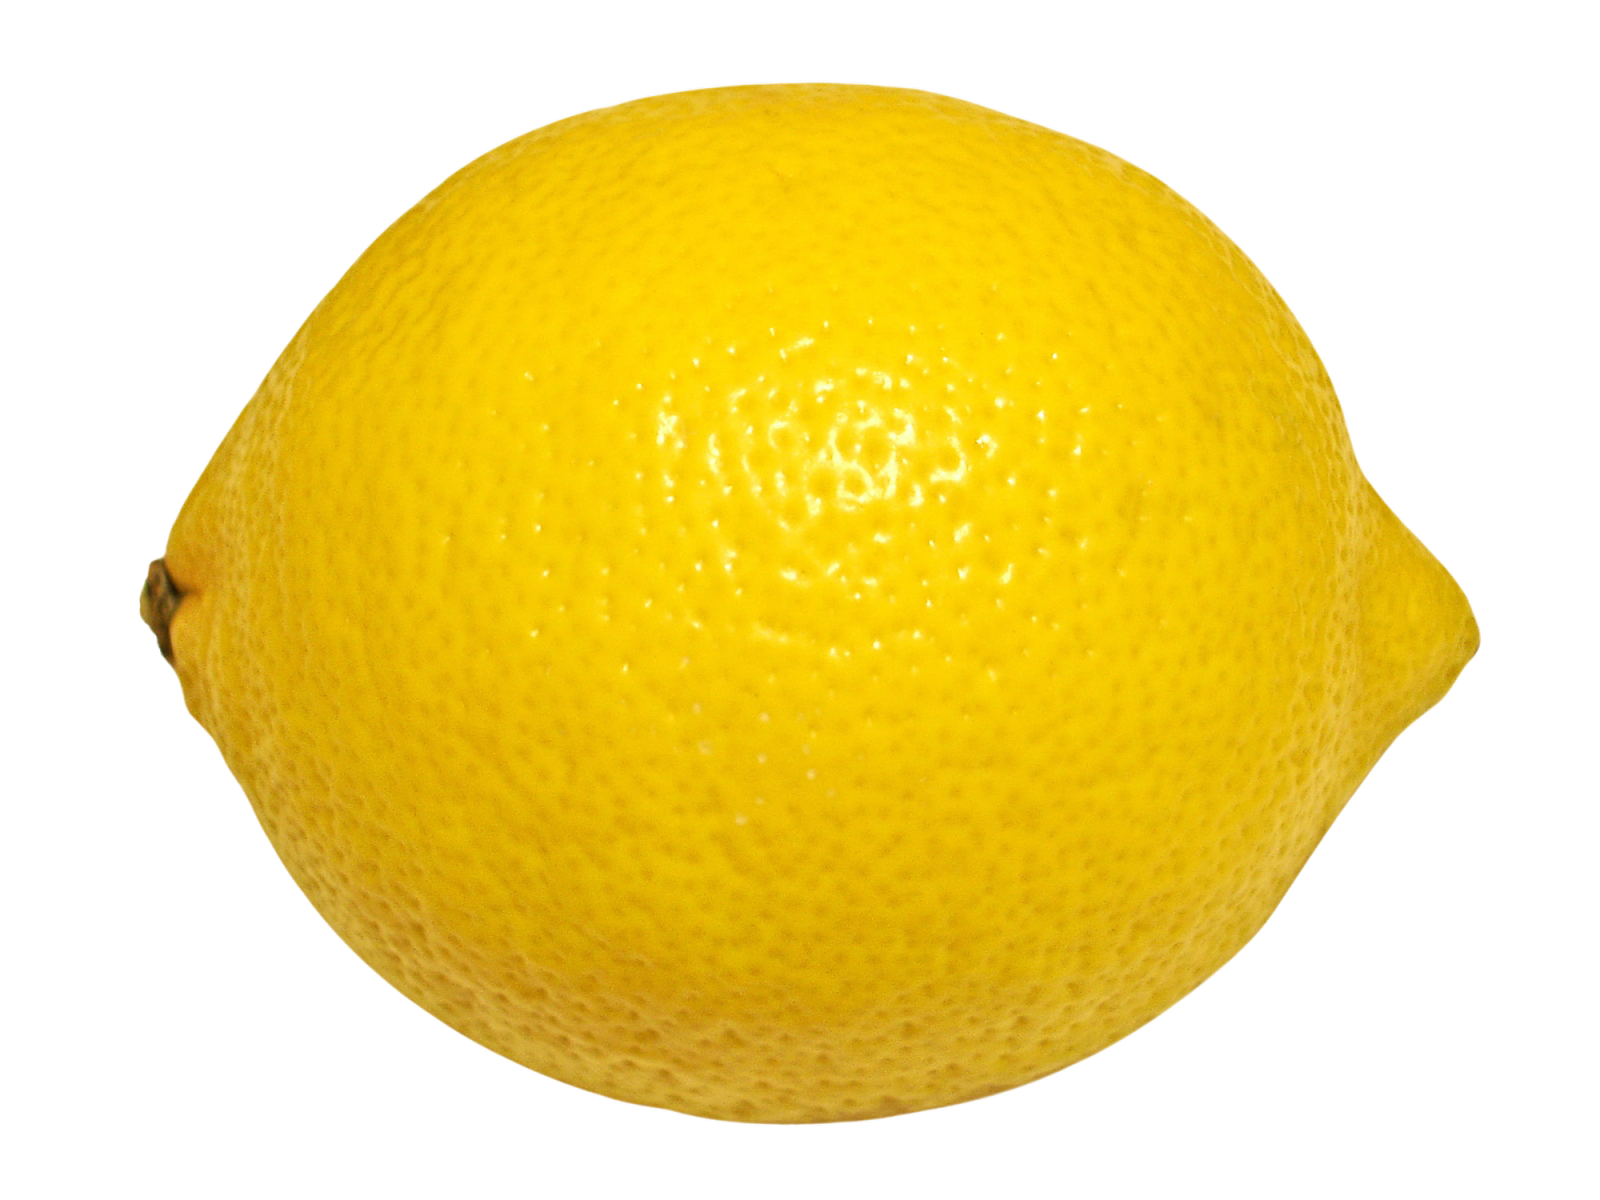 Round lemon. Png sector transparent image